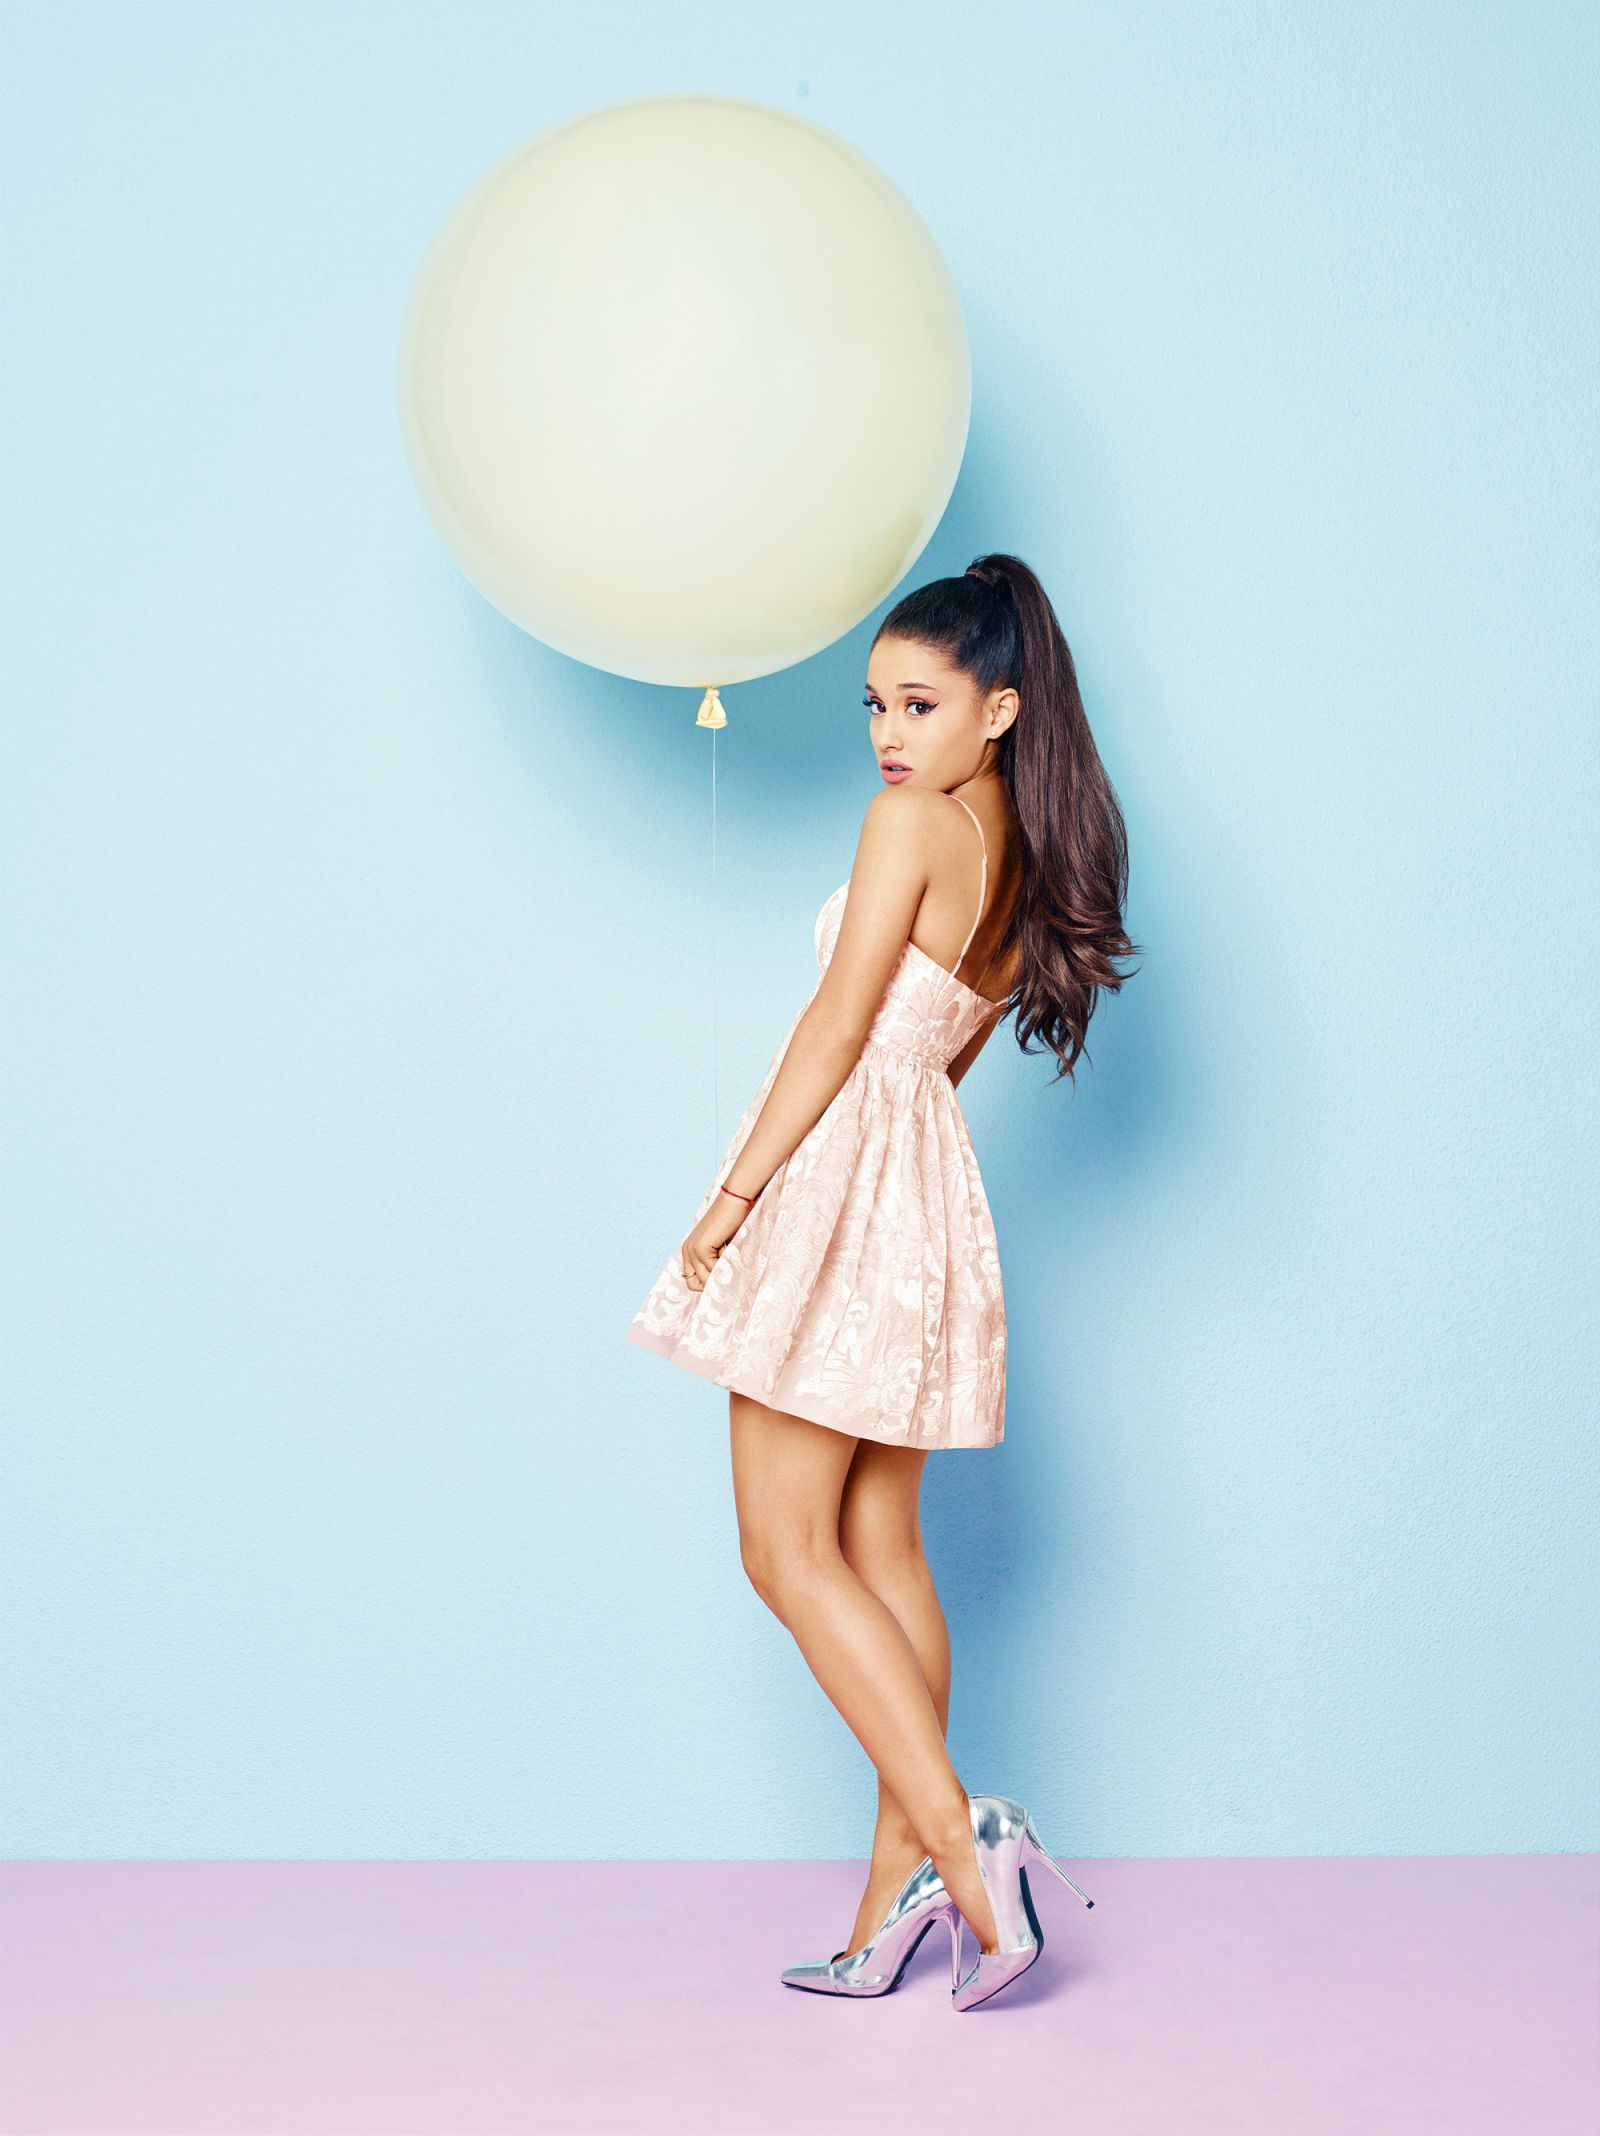 c7ac082a6c Ariana Grande for Lipsy is HERE | Ariana Grande | Ariana grande ...